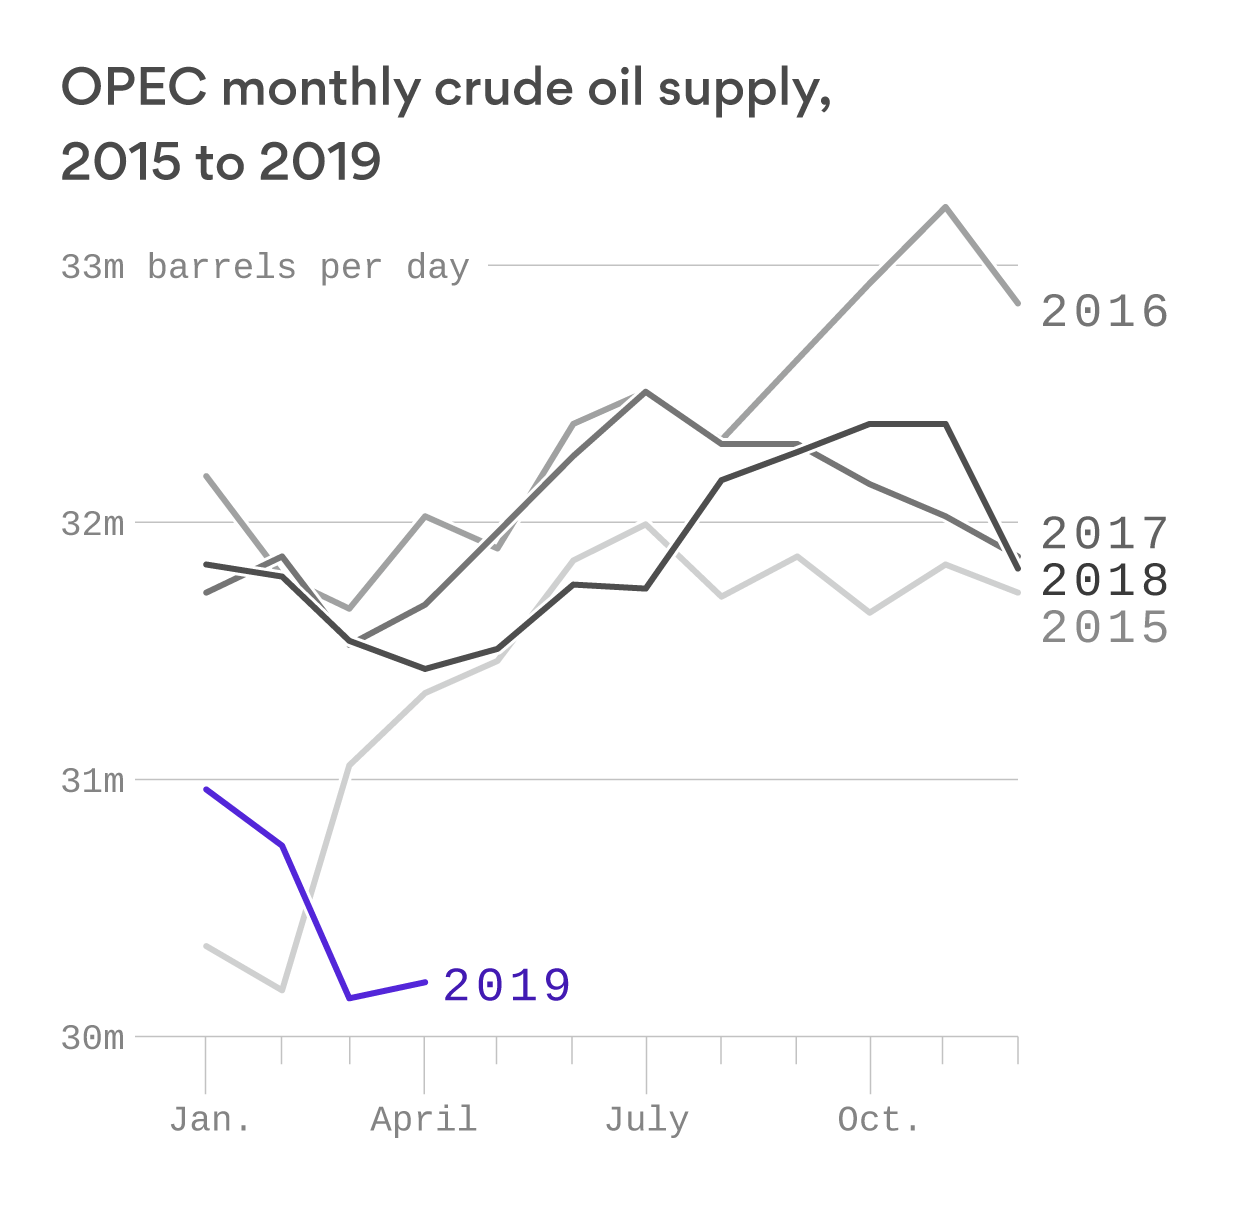 OPEC is massively lowering its production to balance a global oil market rocked by geopolitics